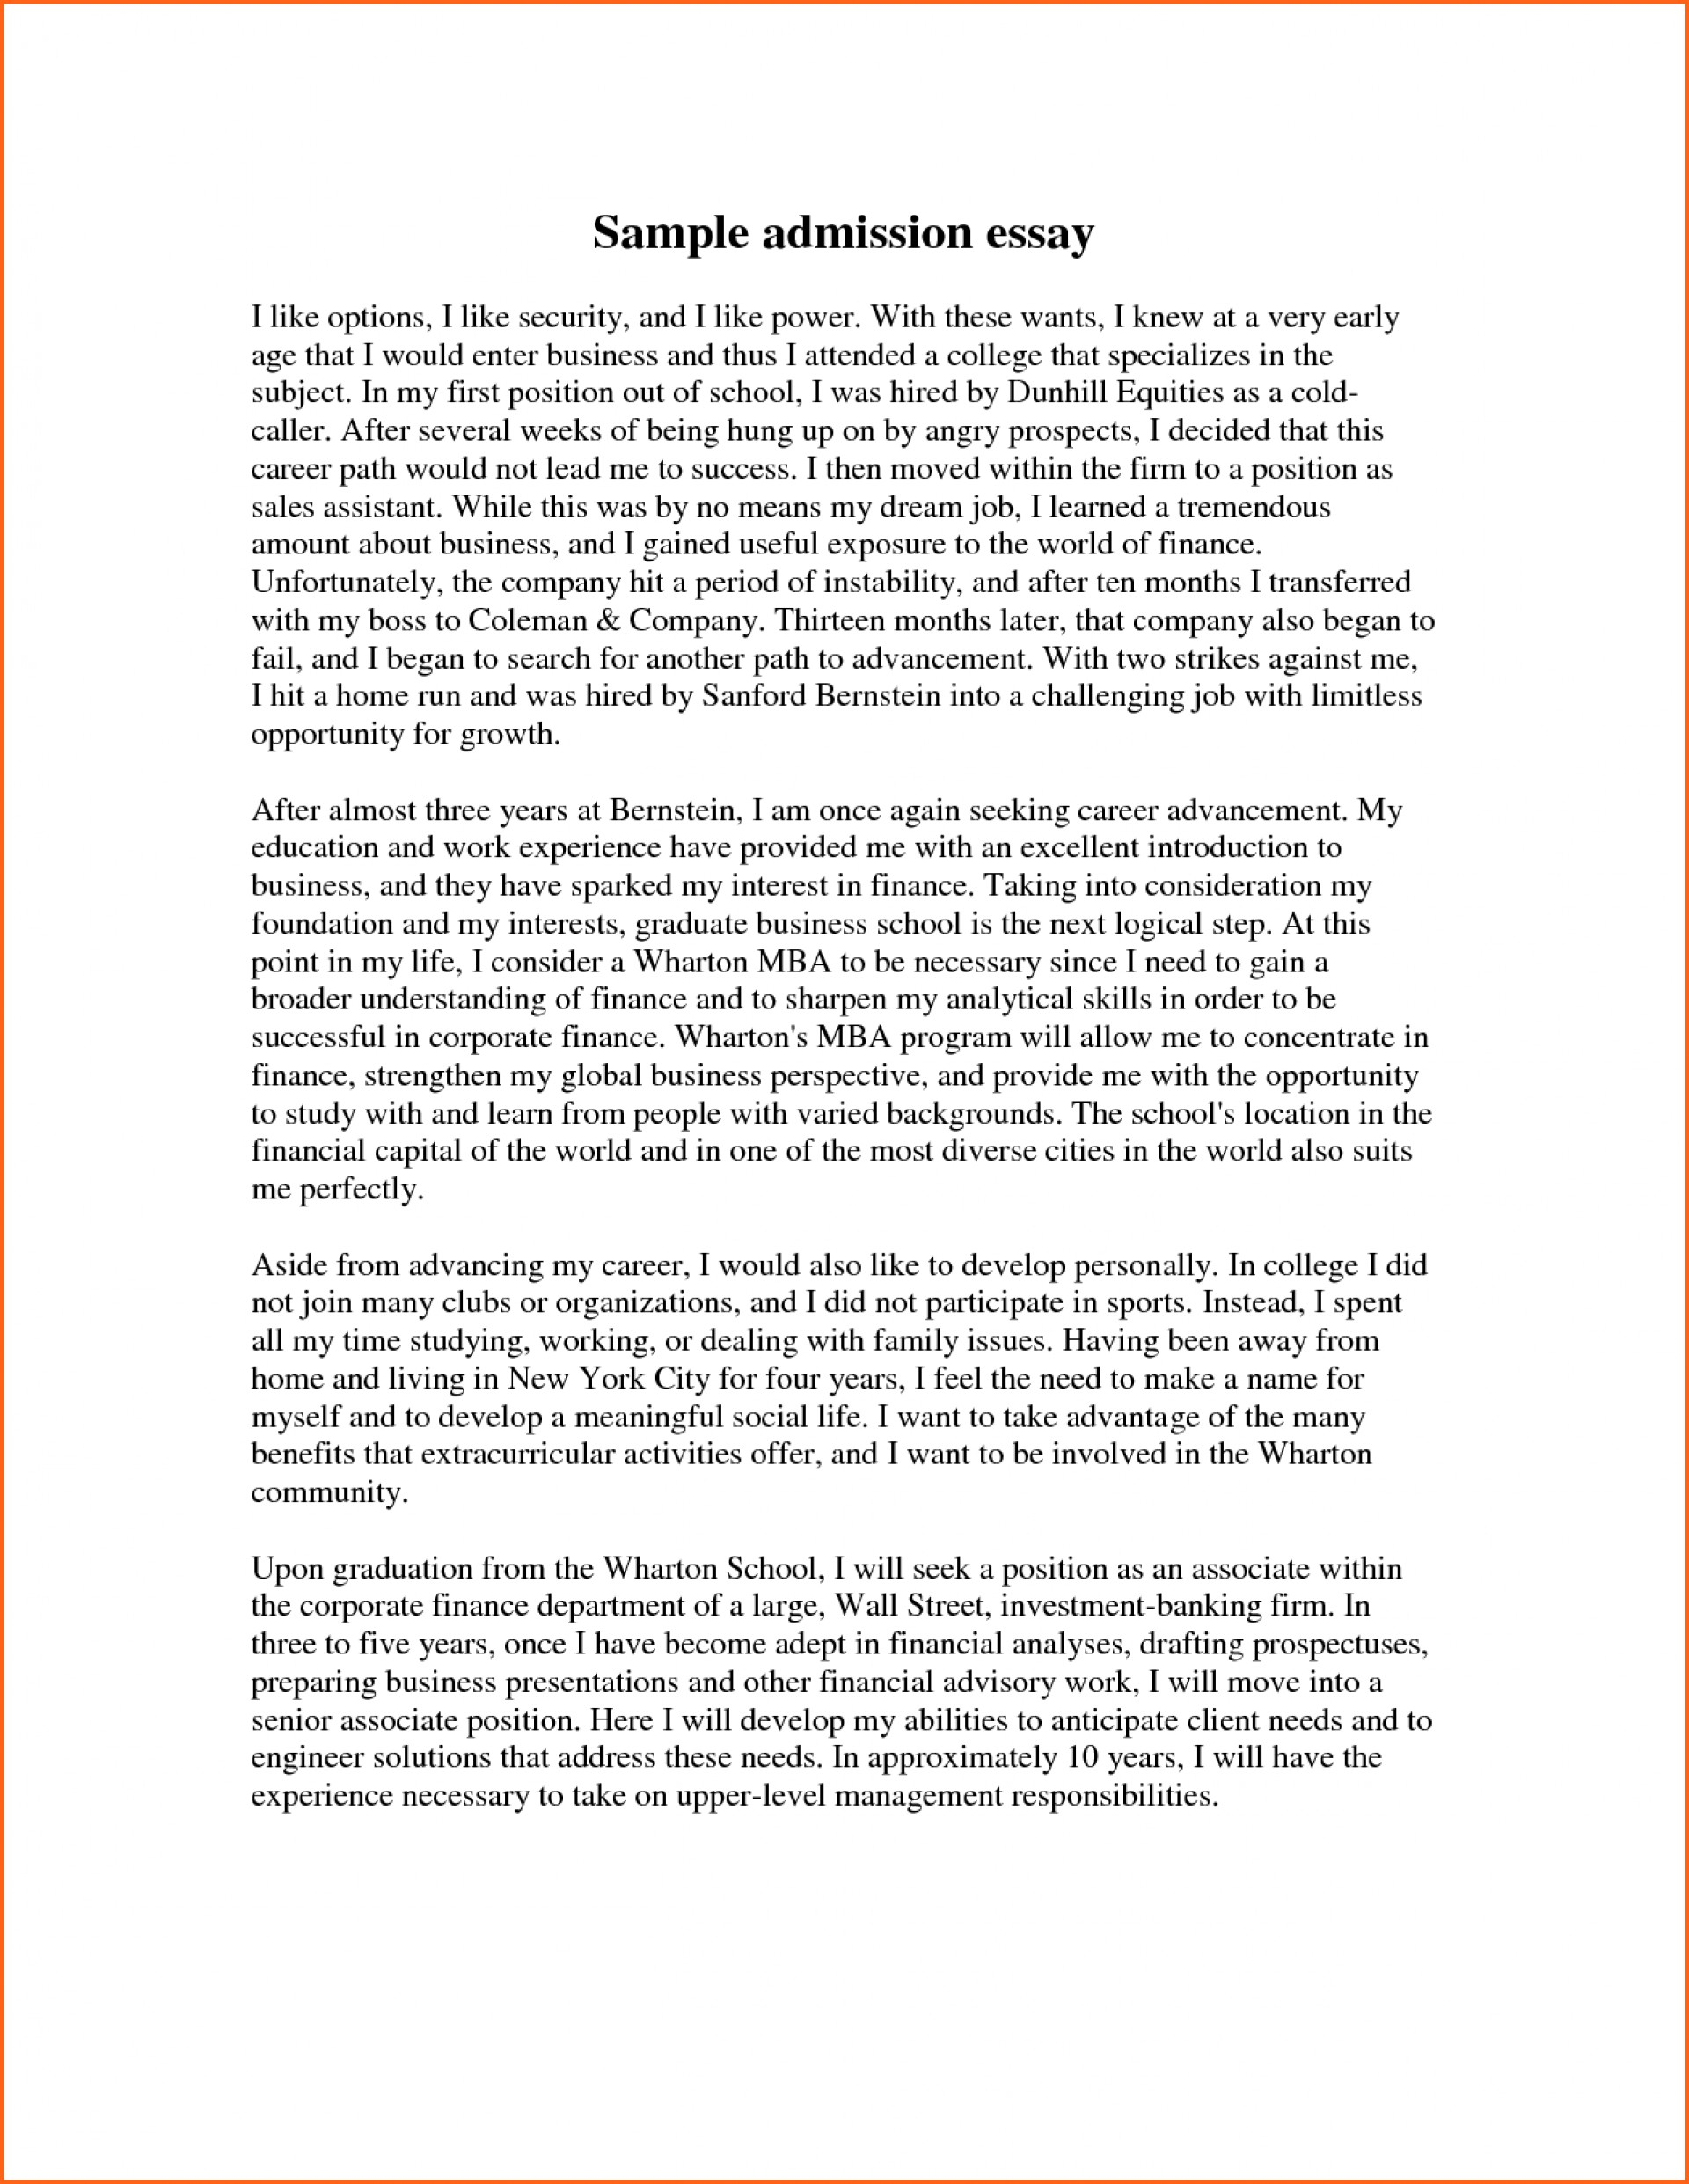 005 College Application Essay Examples Example Amazing Entry Admissions About Autism Tips Admission Ivy League 1920